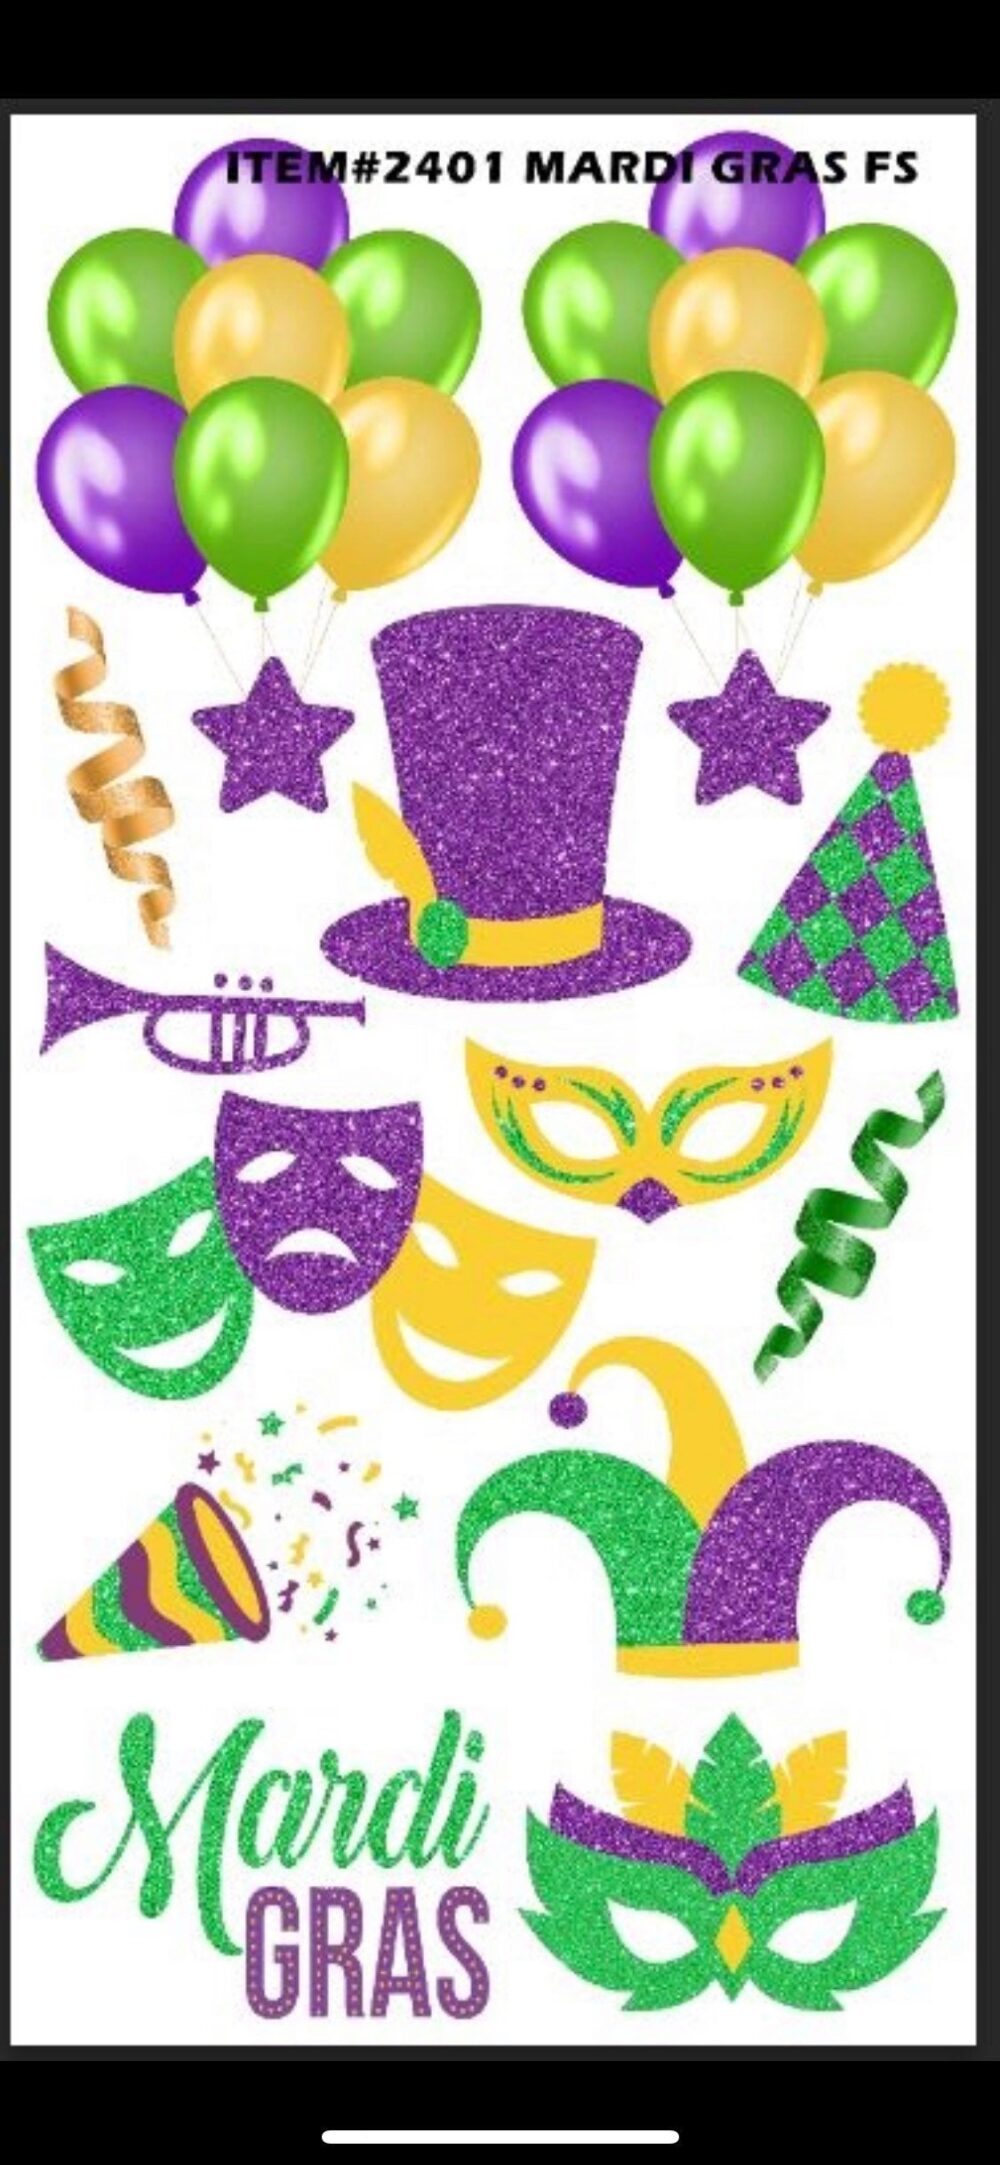 Yard Cards Mardi Gras Purple Yellow Green Celebration Beads Hats Balloons Fs Up083